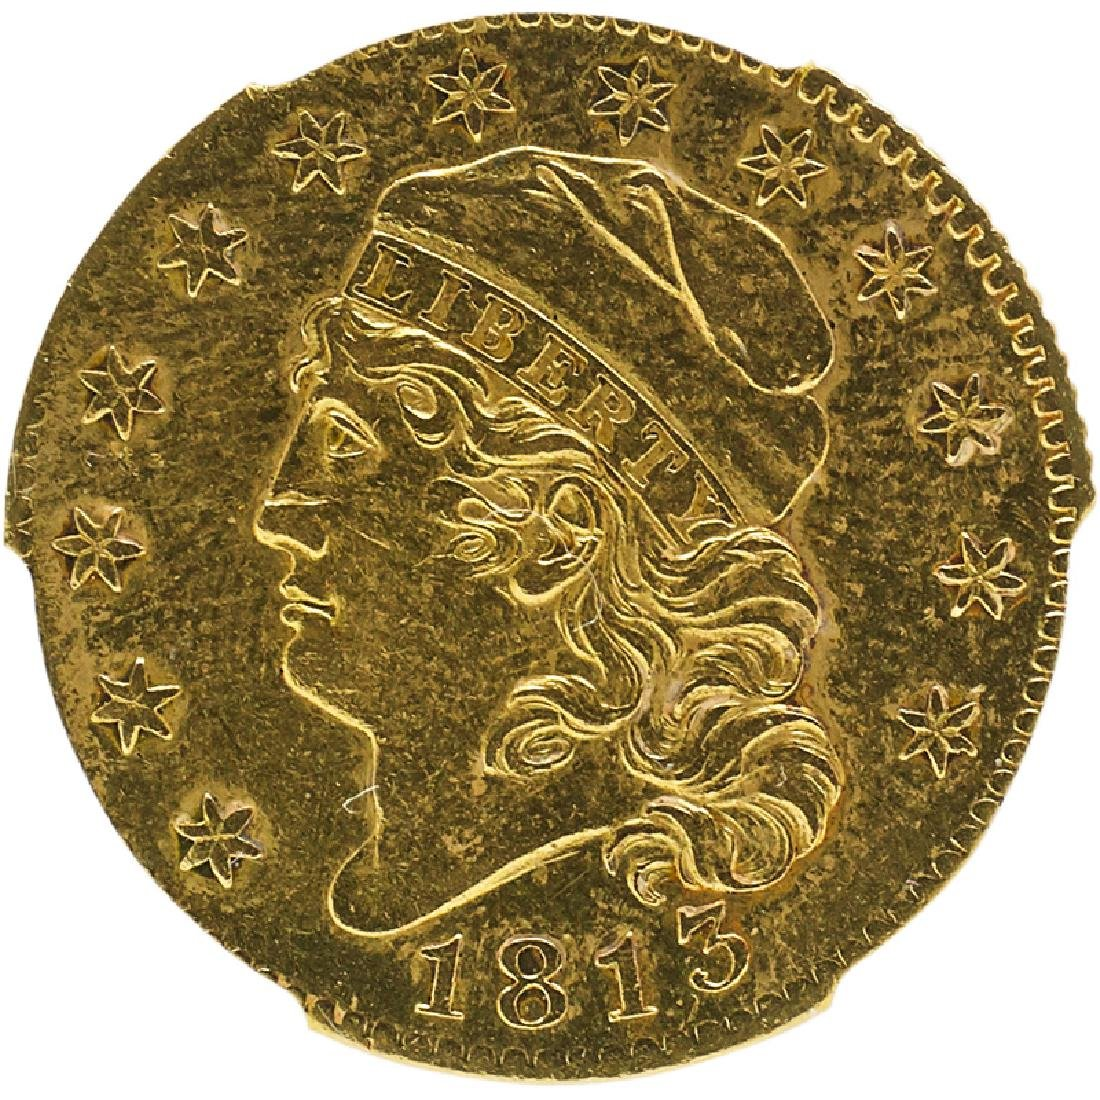 U.S. 1813 CAPPED BUST $5 GOLD COIN